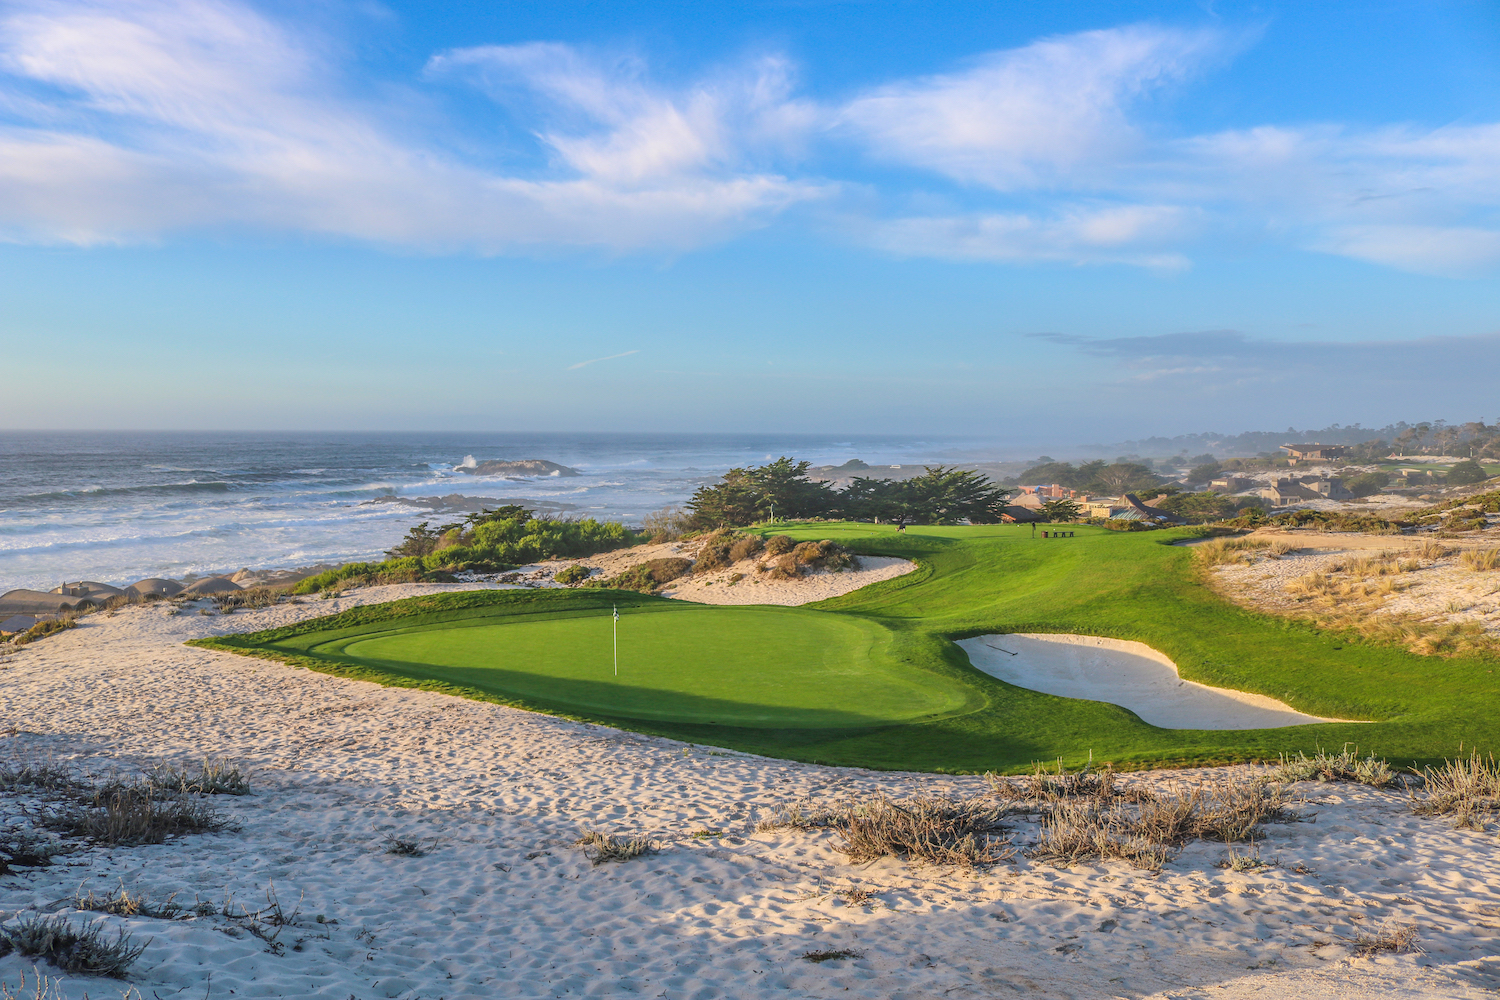 In 2019 Pebble Beach Golf Links Will Celebrate Its 100th Birthday And Host Sixth U S Open To Commemorate These Milestones Each Issue Of